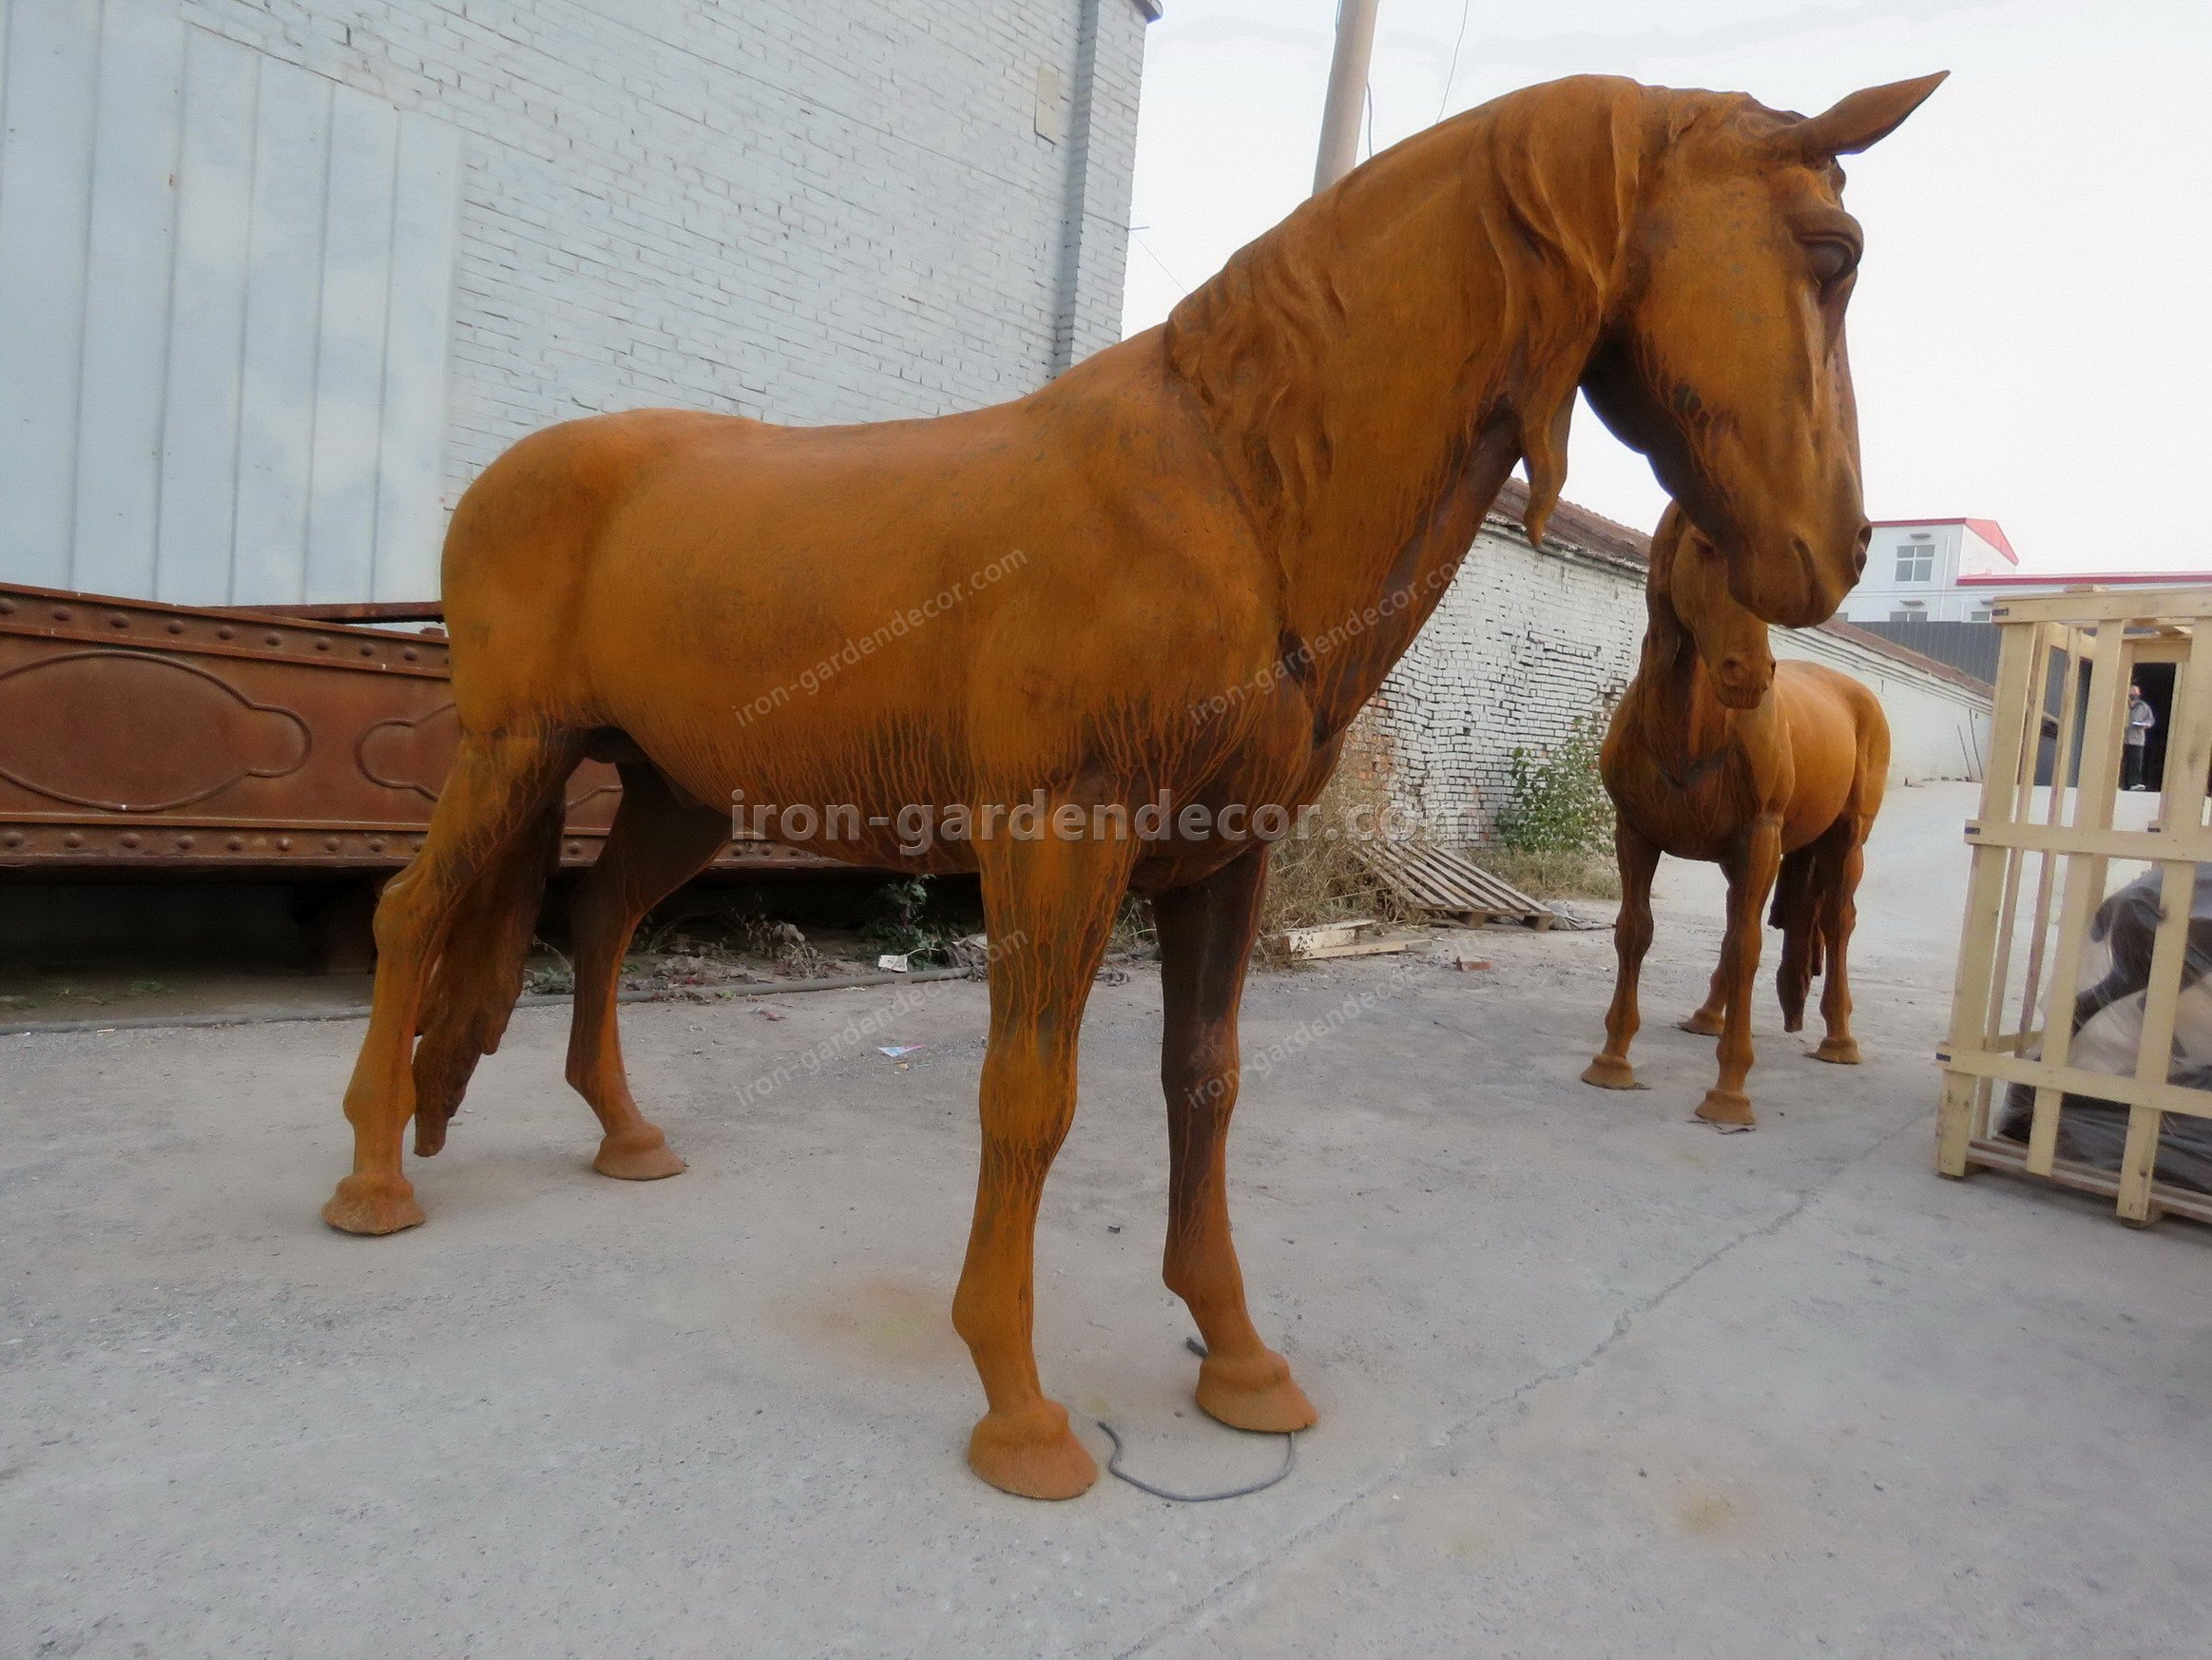 normal size cast iron animal of horse garden animal, large horse animal-SS6027 (14)